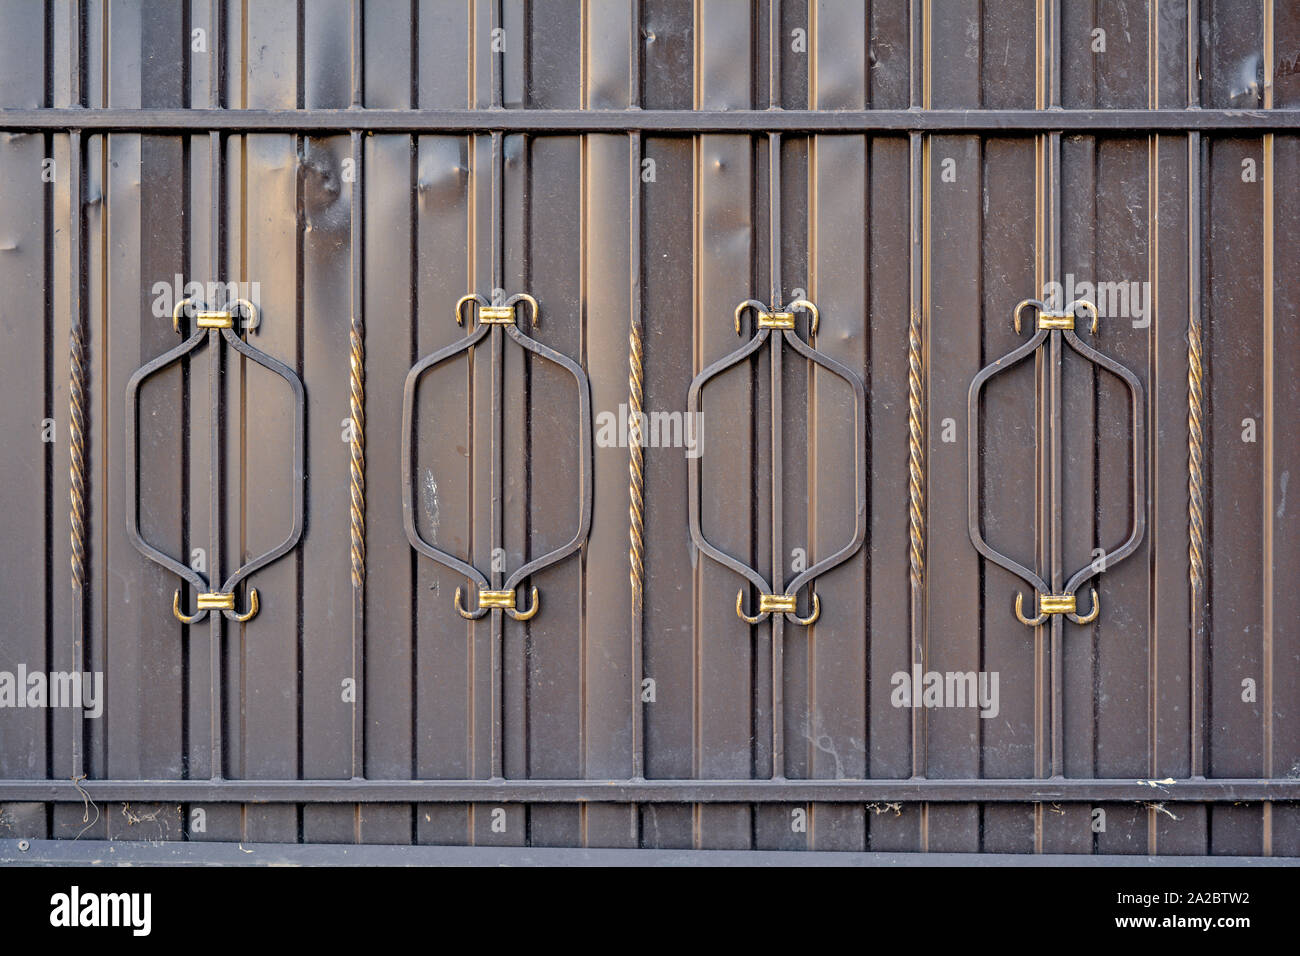 Element Of Architectural Decorative Exterior Metal Fence